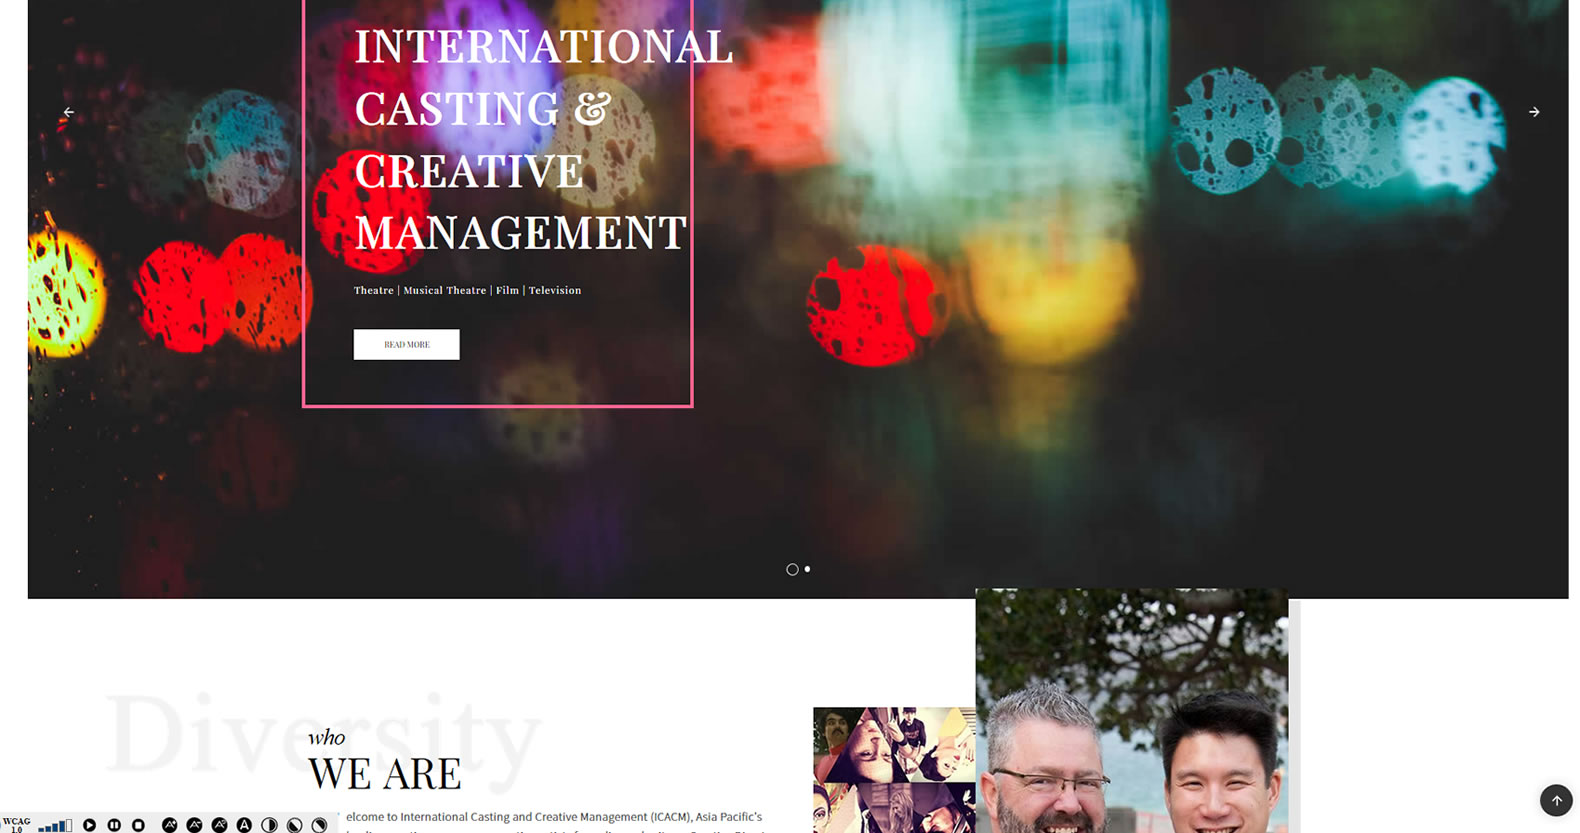 International Casting & Creative Management